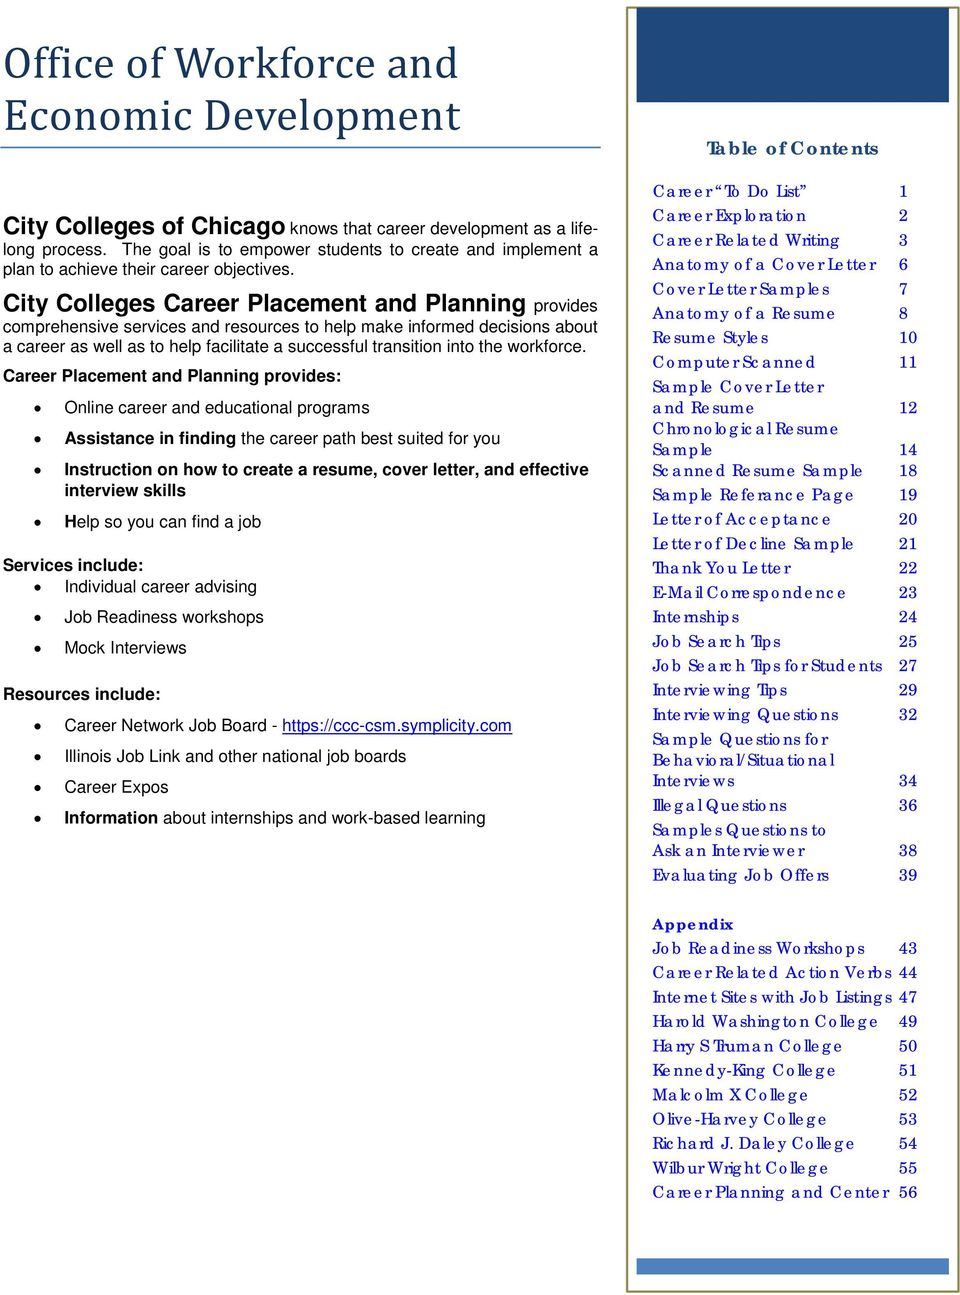 City Colleges Career Placement and Planning provides comprehensive services and resources to help make informed decisions about a career as well as to help facilitate a successful transition into the